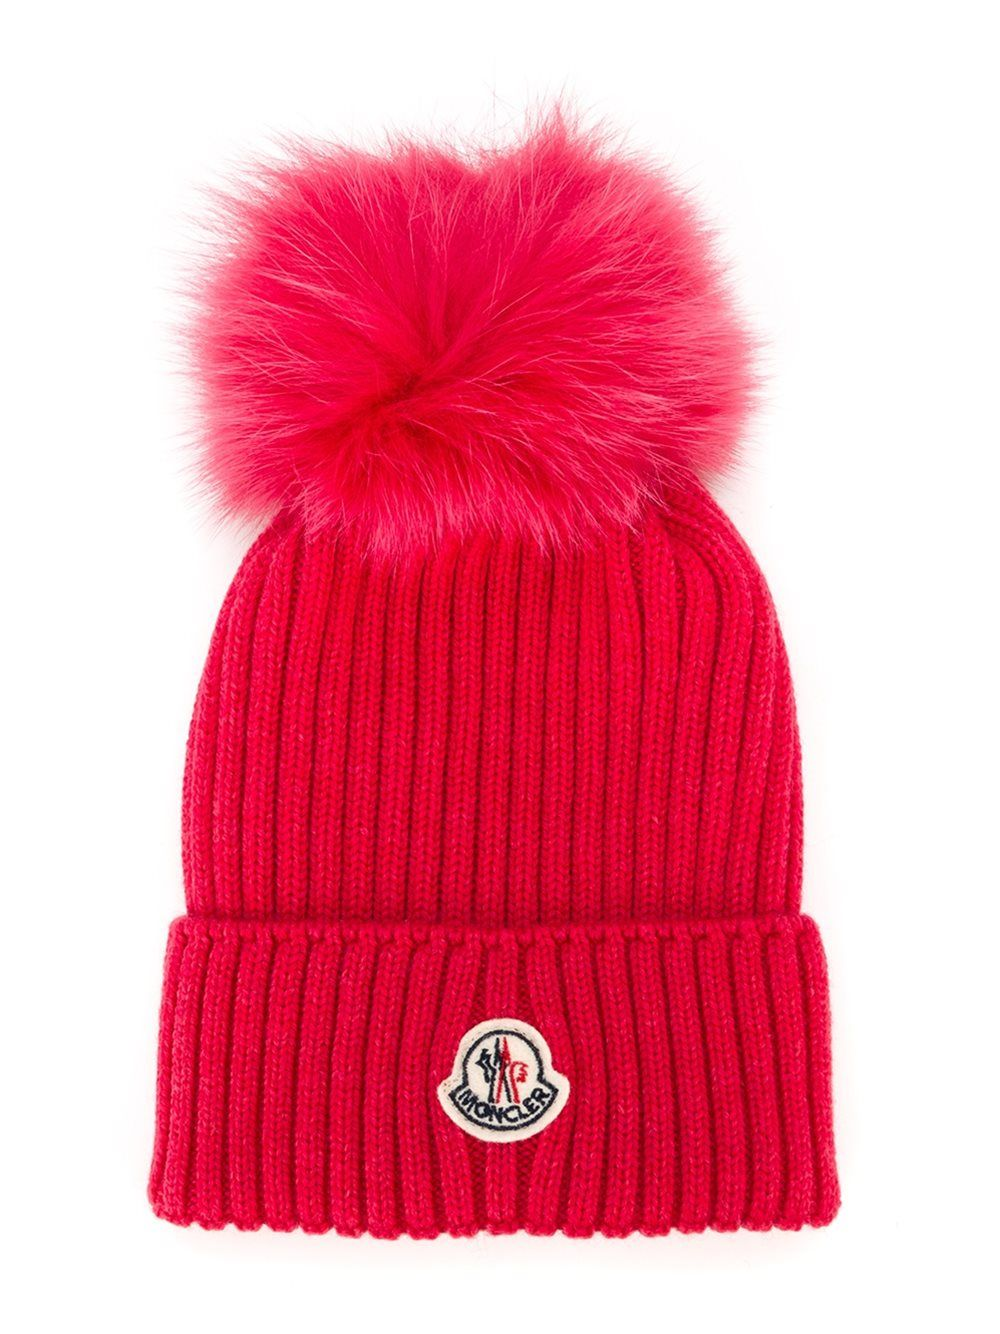 moncler  kids  beanie  fur  red  pompom  hats  new www.jofre.eu ... a45311114fe